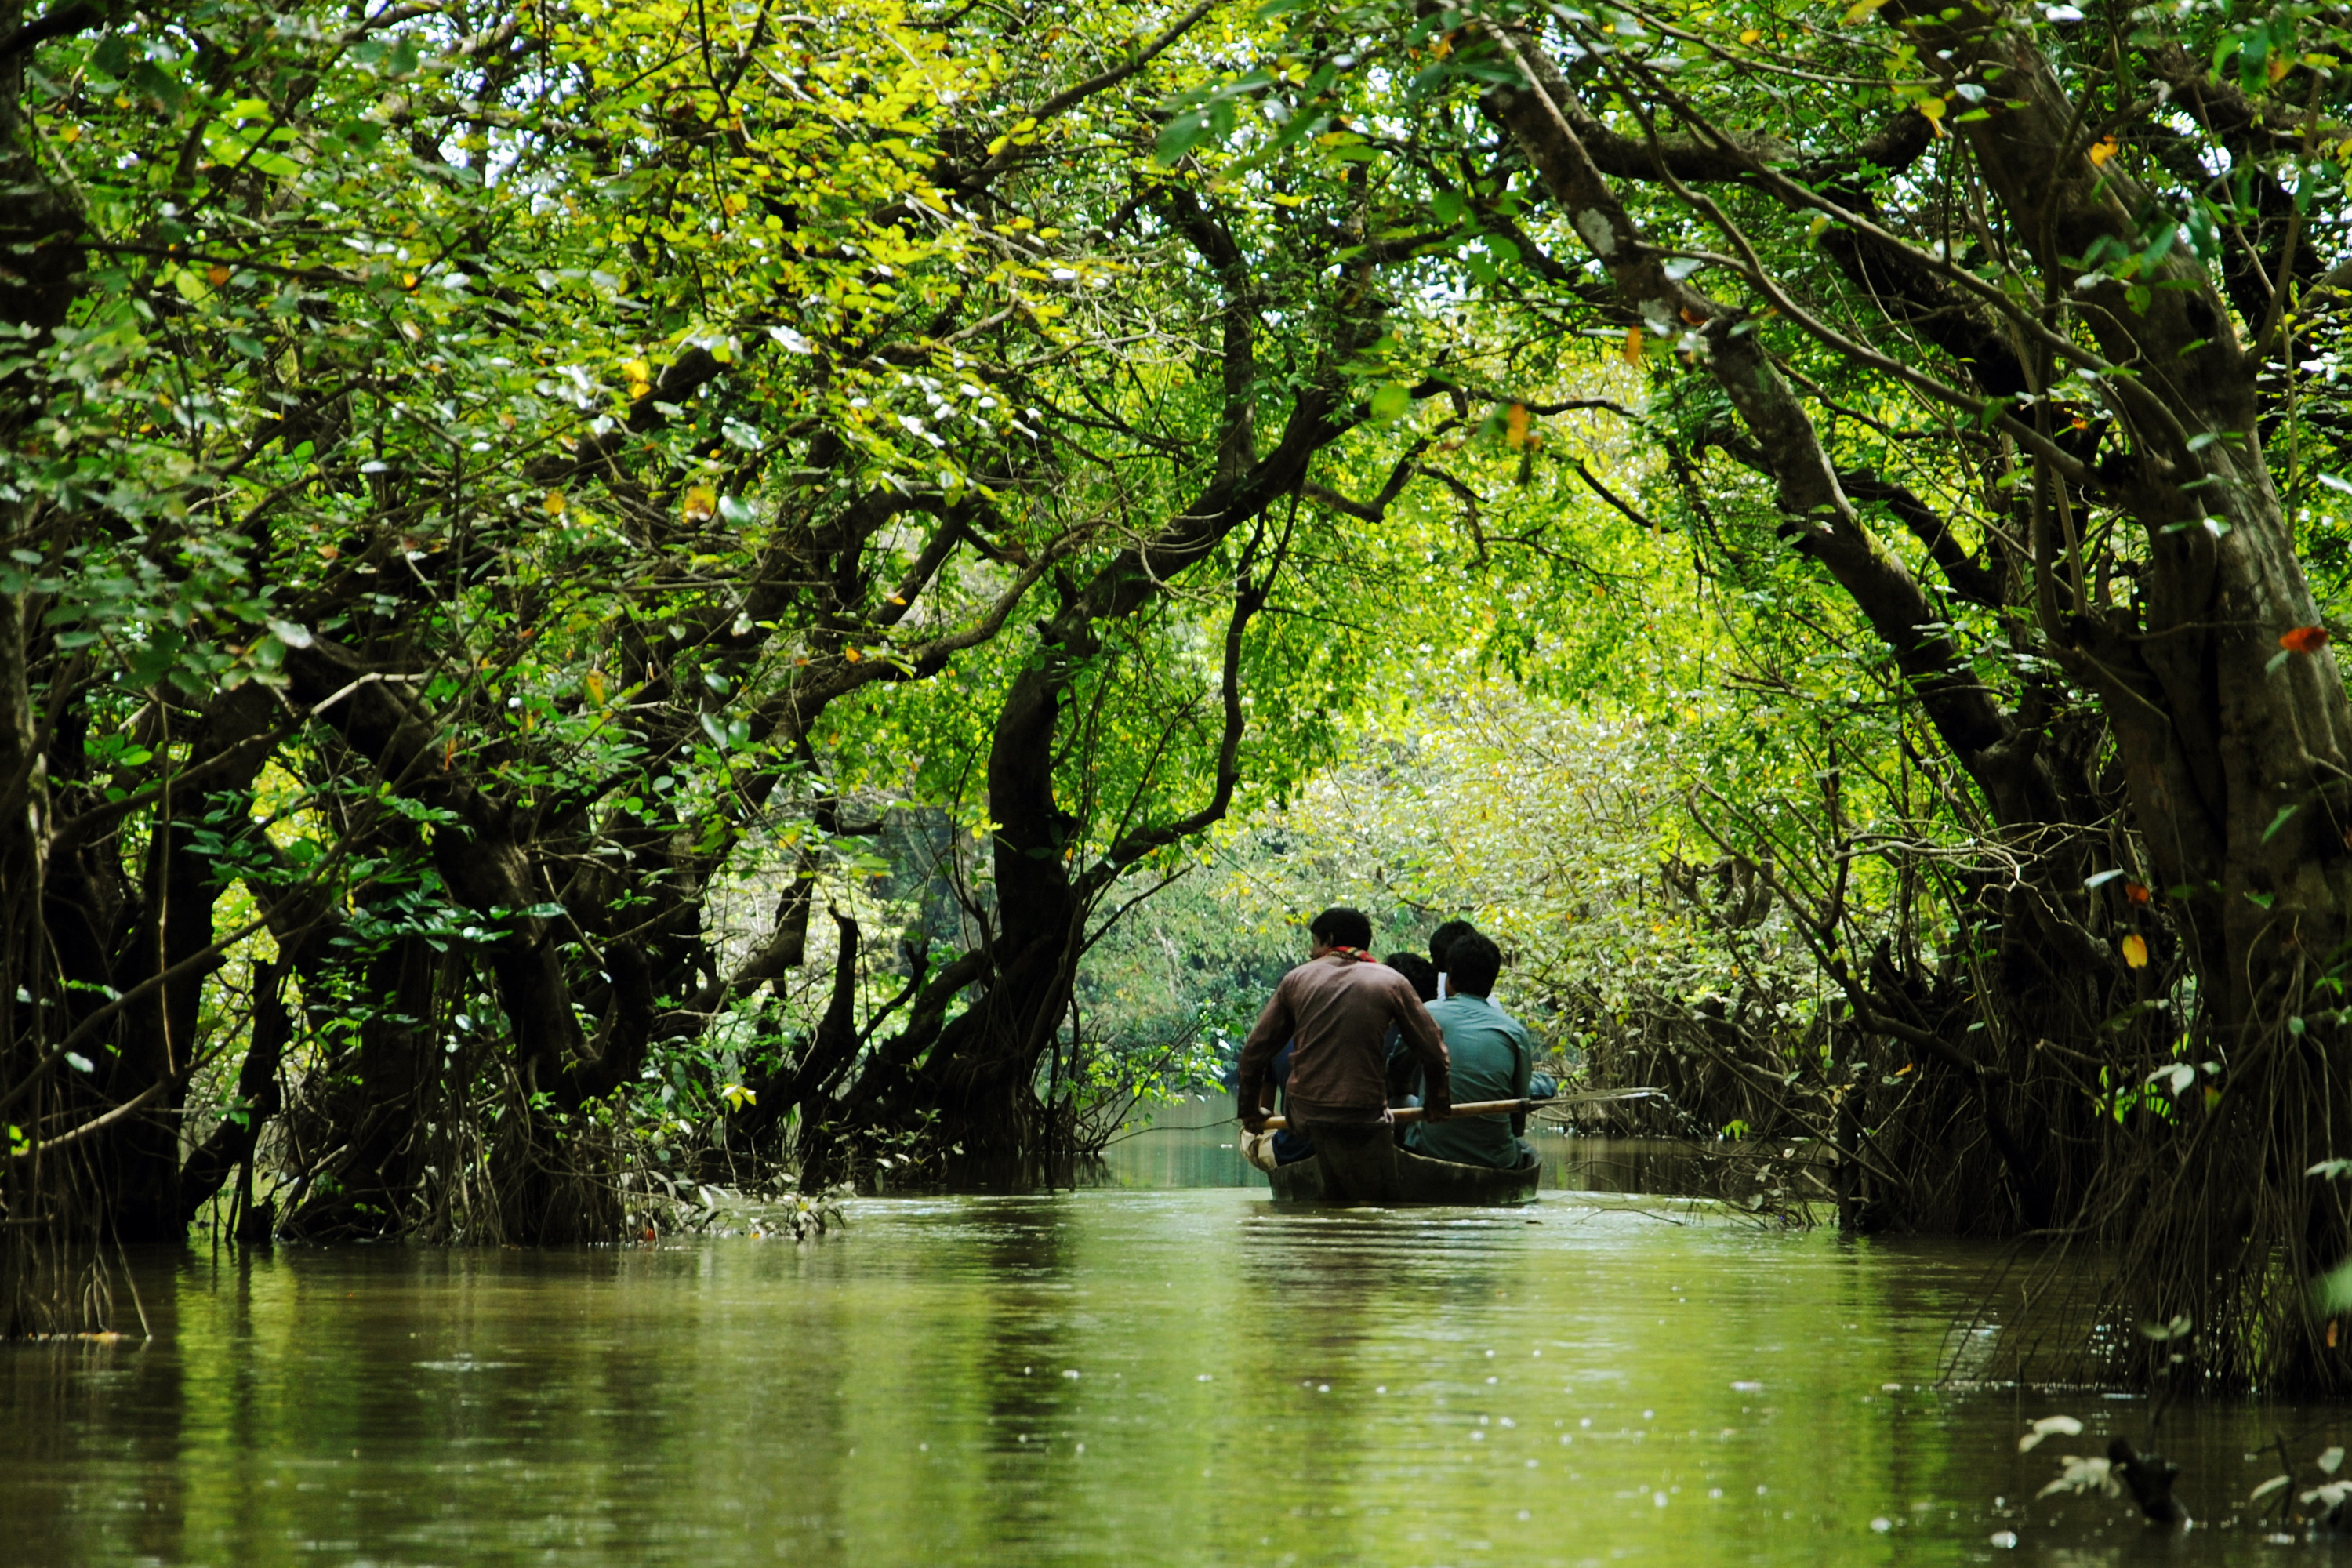 A boat traveling between the trees at Ratargul